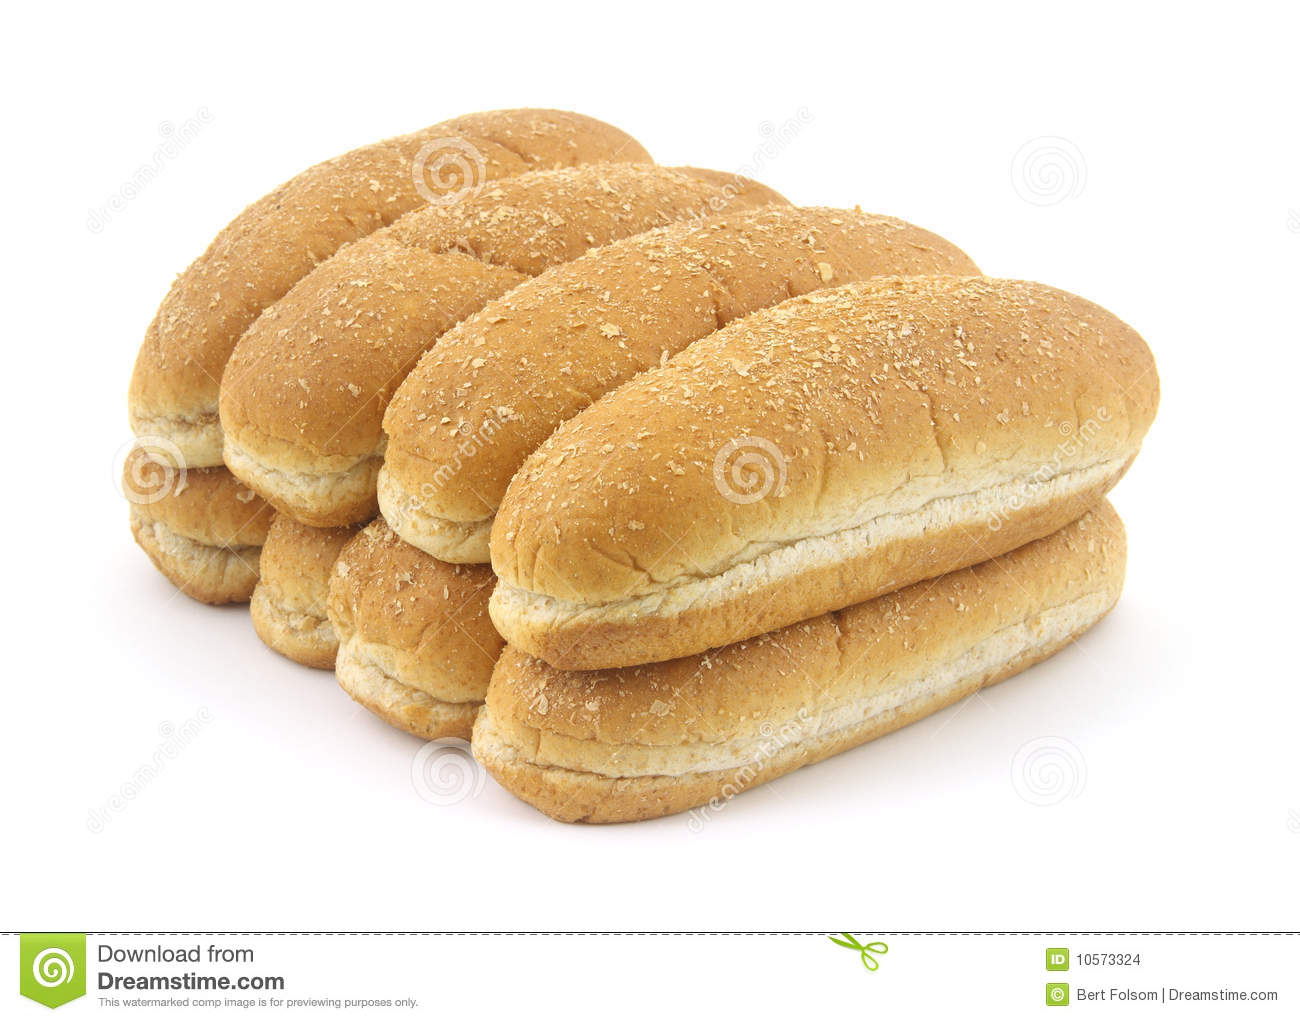 Image Result For Dog Buns Healthy